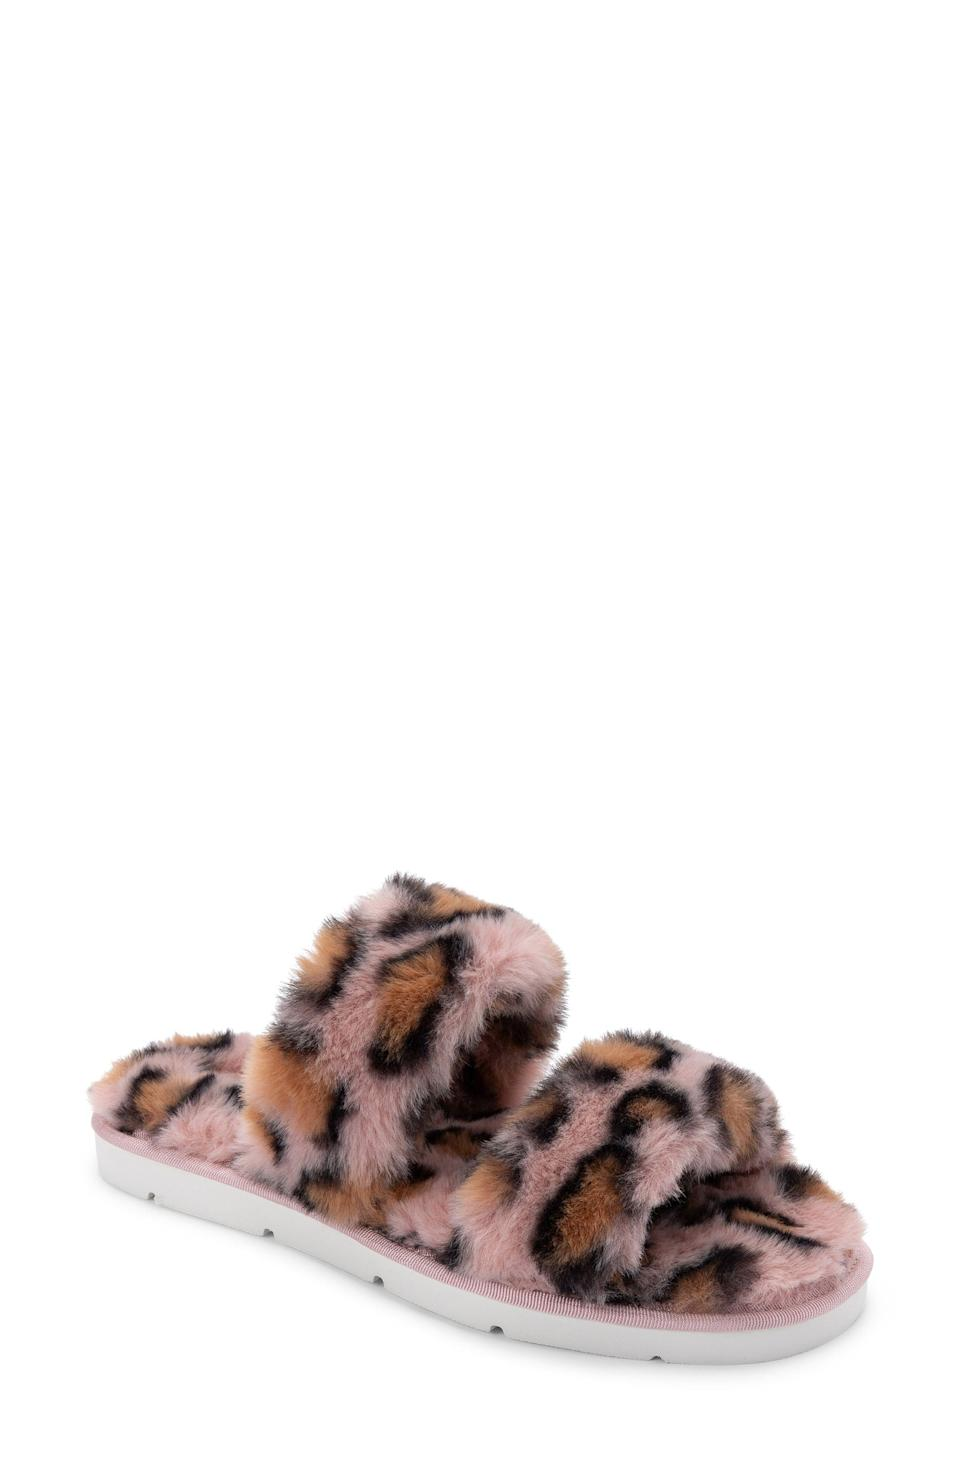 """<p><strong>DOLCE VITA</strong></p><p>nordstrom.com</p><p><strong>$19.98</strong></p><p><a href=""""https://go.redirectingat.com?id=74968X1596630&url=https%3A%2F%2Fwww.nordstrom.com%2Fs%2Fdolce-vita-puff-faux-fur-slipper-women%2F5737861&sref=https%3A%2F%2Fwww.marieclaire.com%2Ffashion%2Fg35090742%2Fnordstrom-half-yearly-sale-2020%2F"""" rel=""""nofollow noopener"""" target=""""_blank"""" data-ylk=""""slk:Shop Now"""" class=""""link rapid-noclick-resp"""">Shop Now</a></p>"""